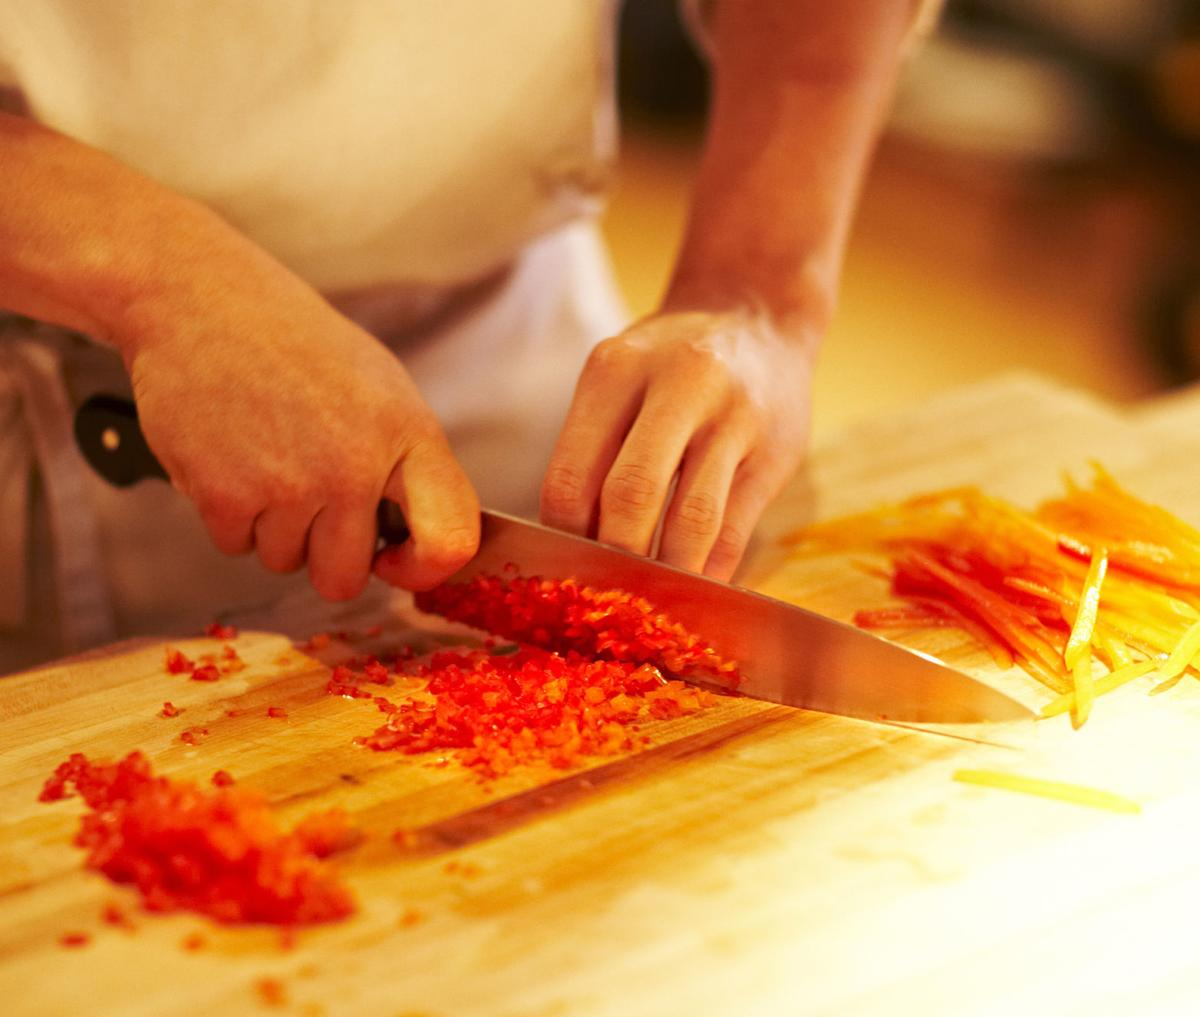 Chef mincing bell peppers with knife